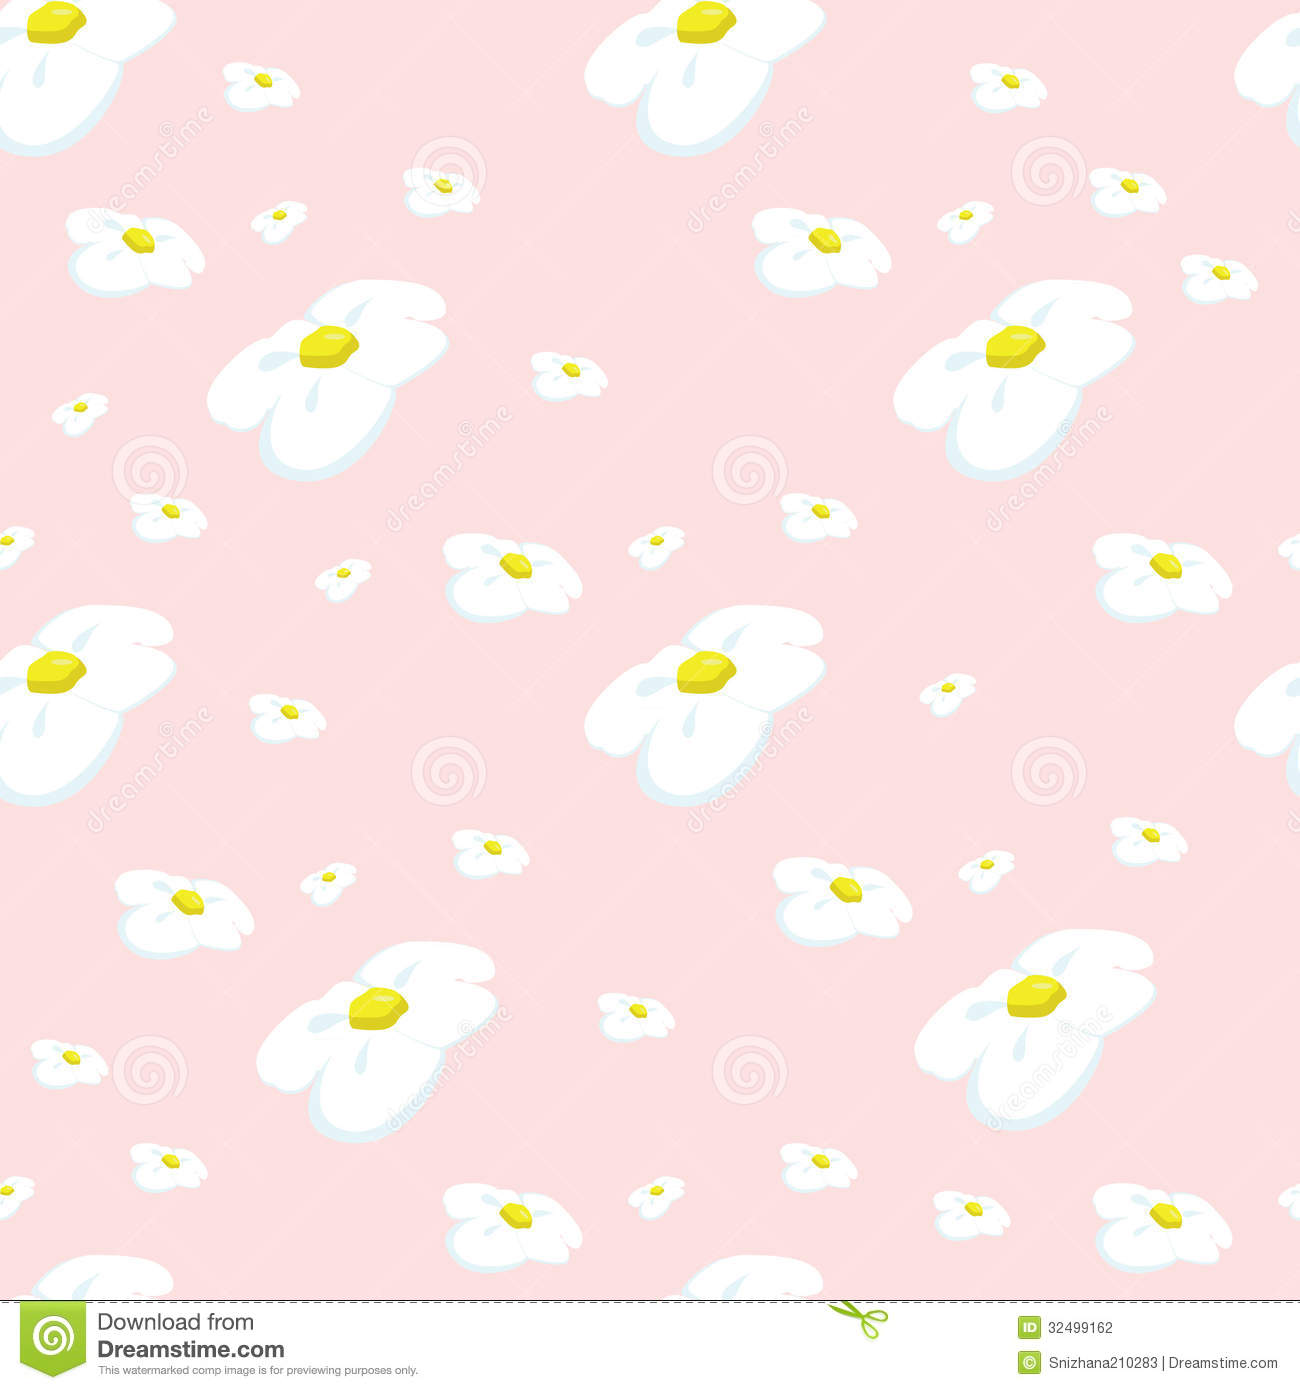 daisy pattern background